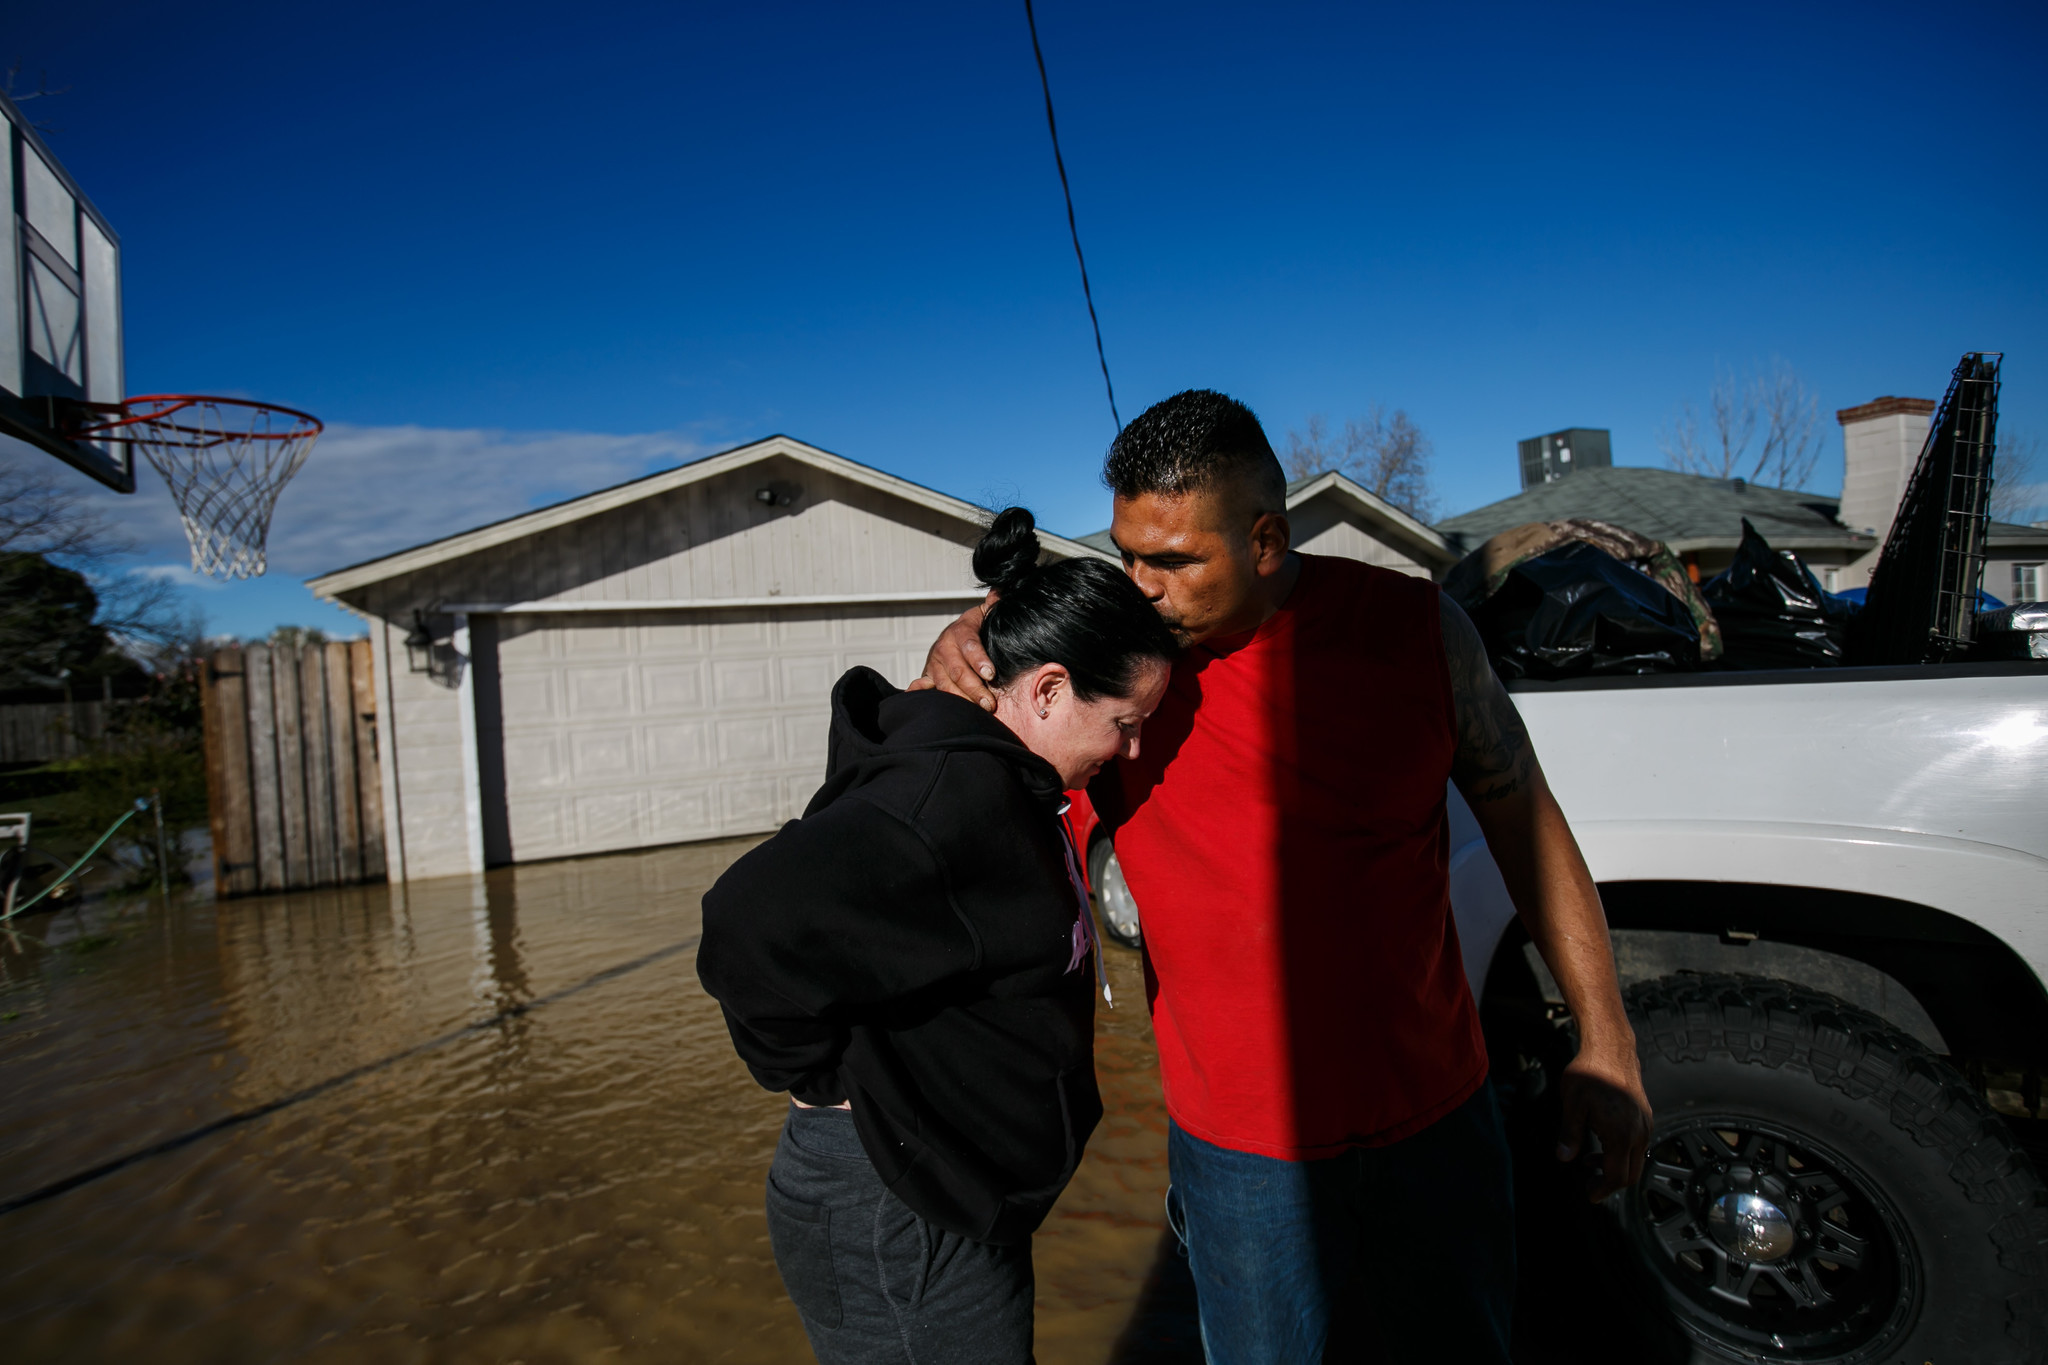 Flooding fears heighten as another powerful storm takes aim at Northern California